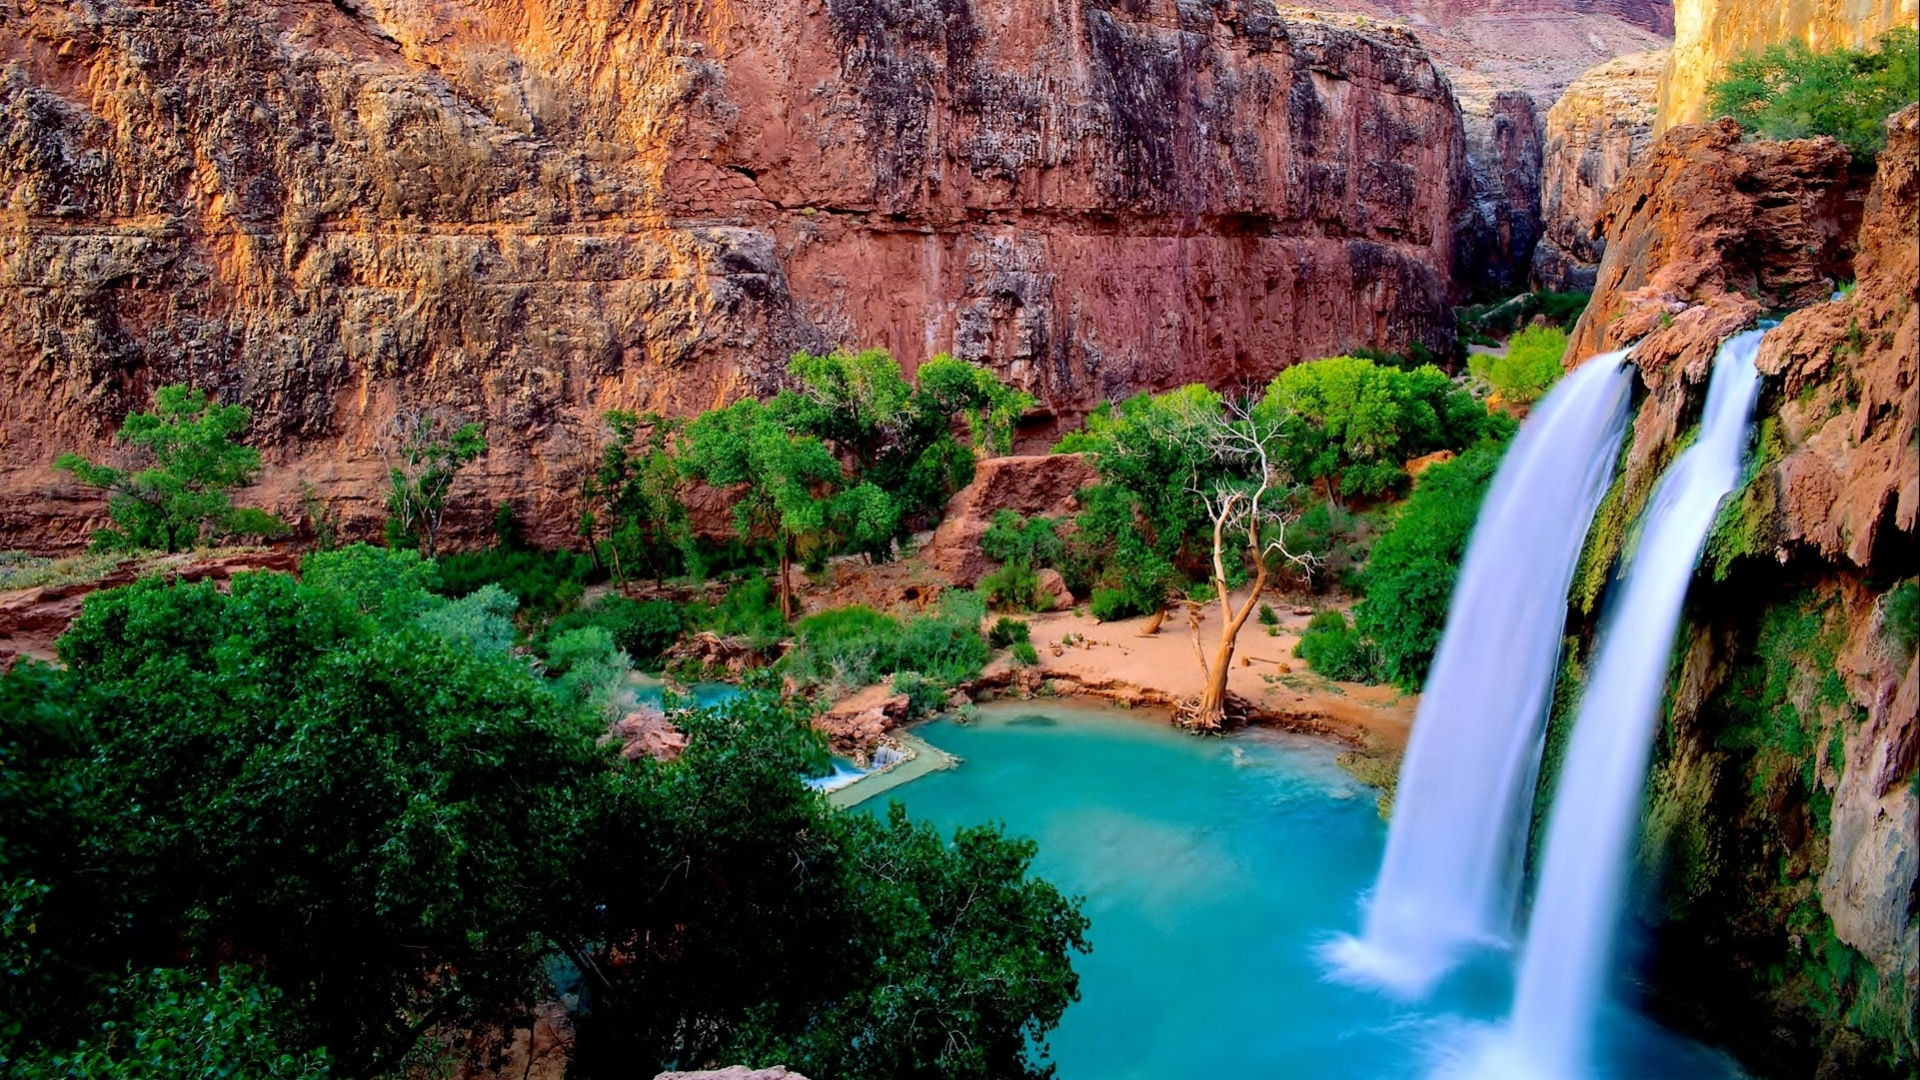 Soothing waterfall wallpaper most beautiful waterfall for Most beautiful places in america nature